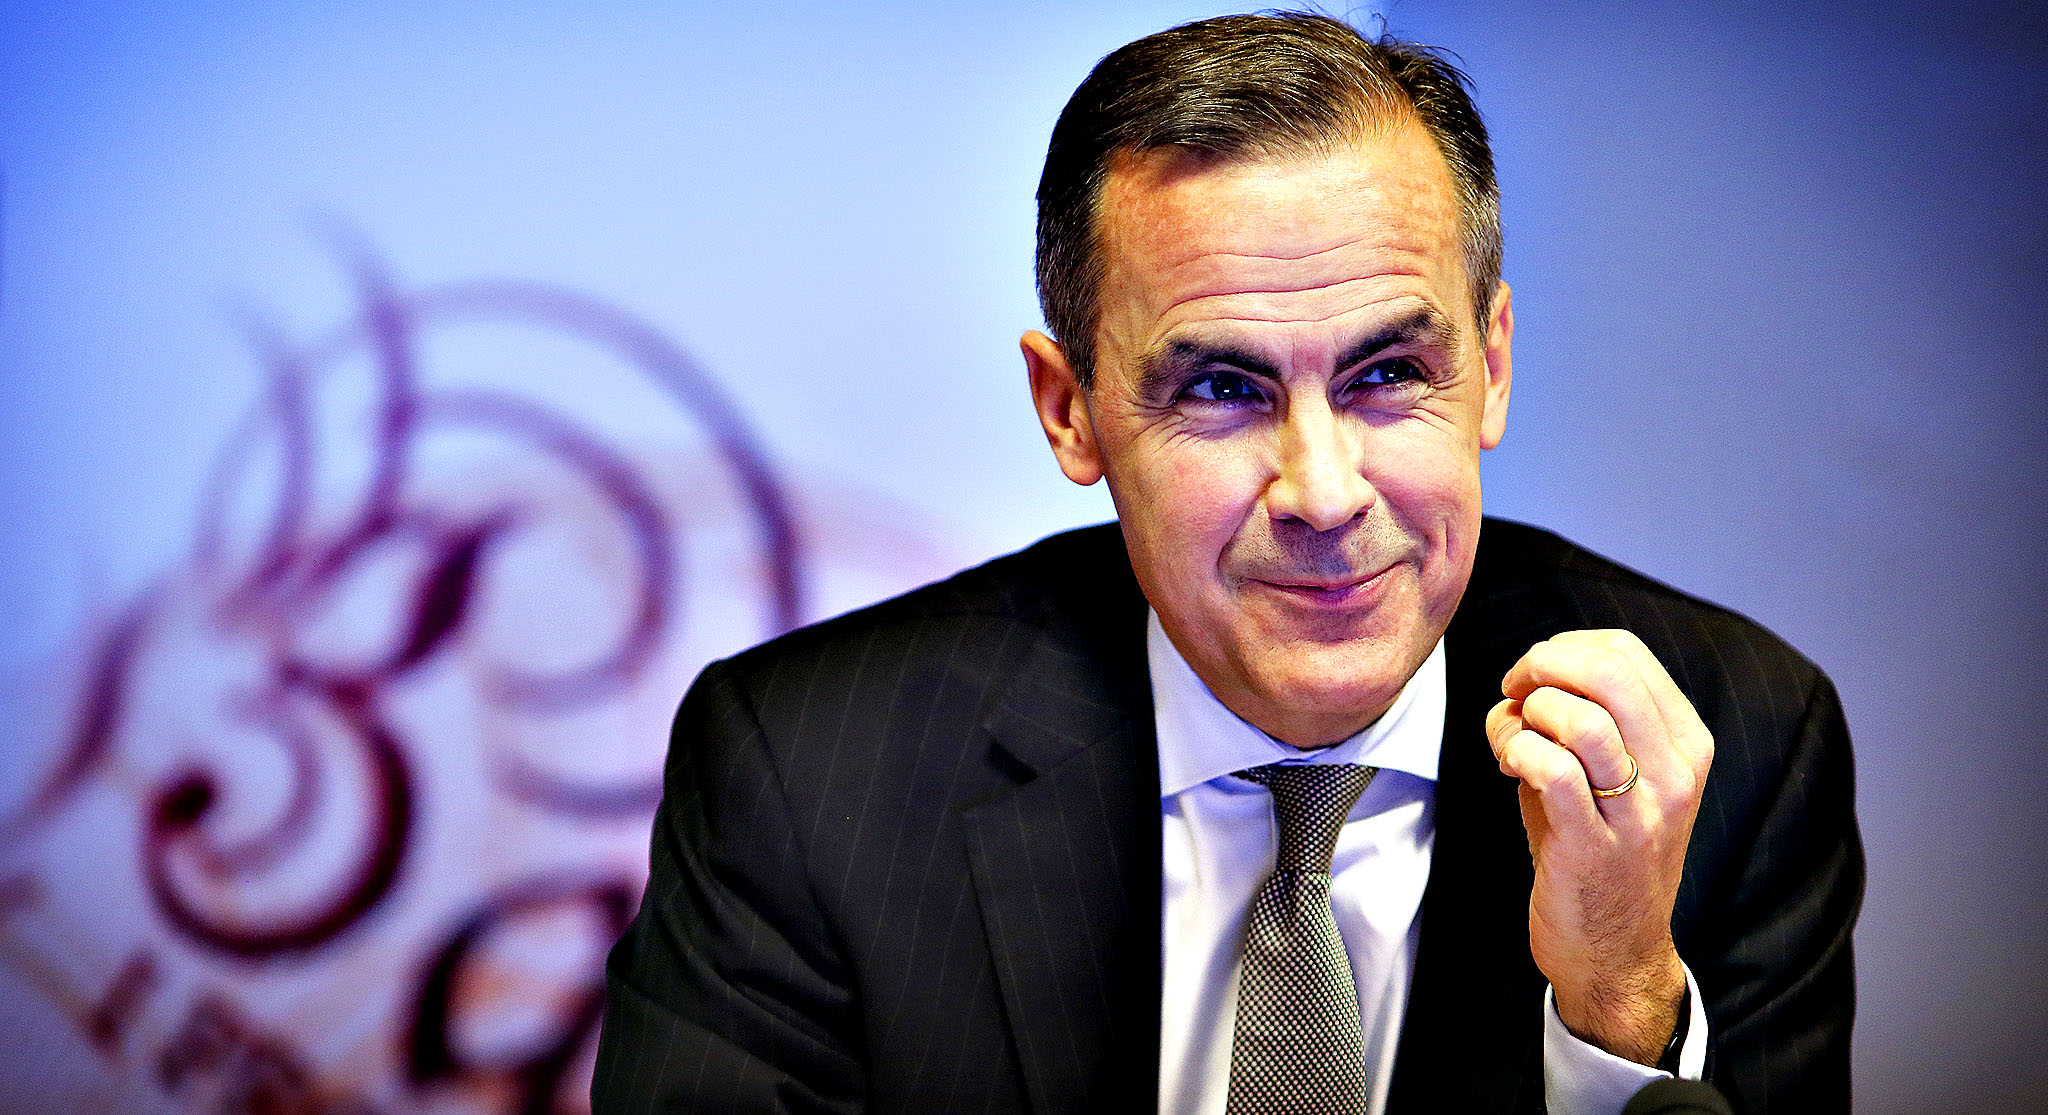 Pound Sterling Exchange Rate Jumps On BoE Cut Hopes Diminishing